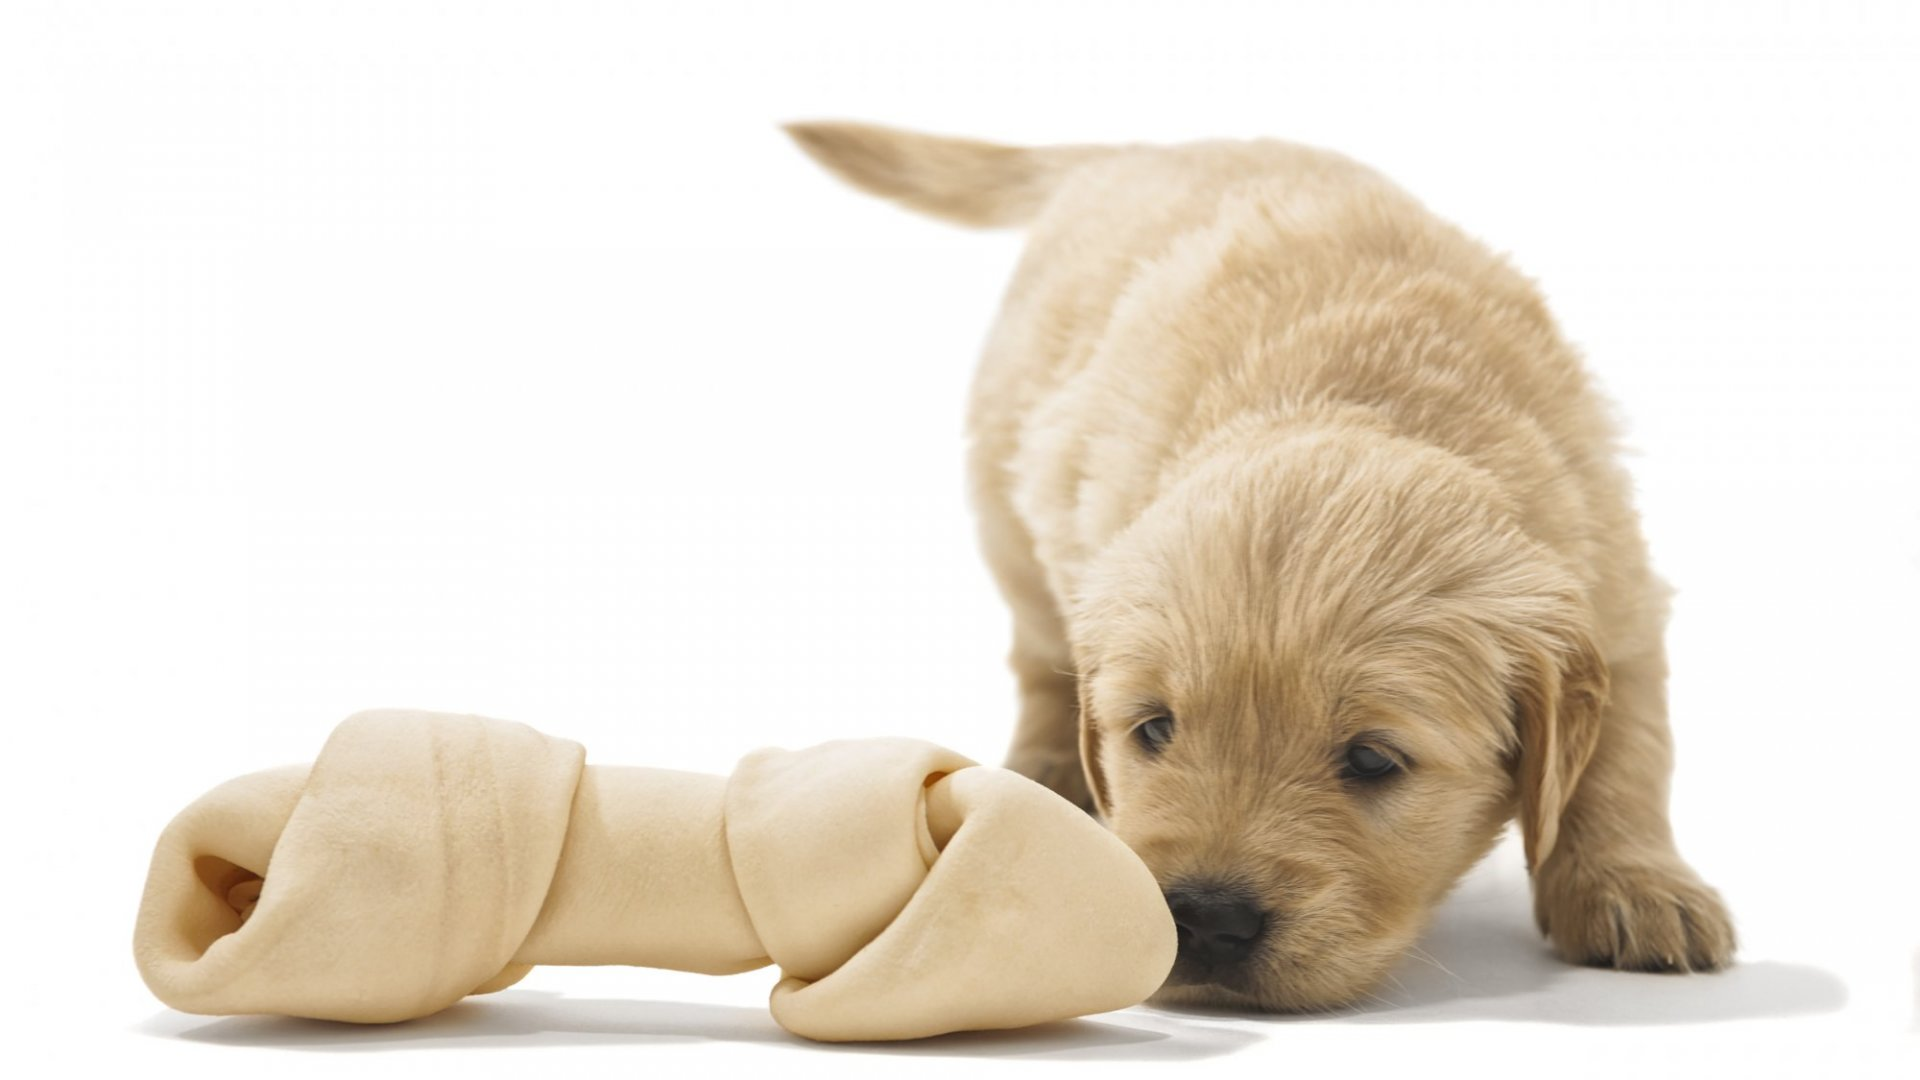 Puppy-Loving CEO Shares Tips for Sniffing Out Authenticity in Business